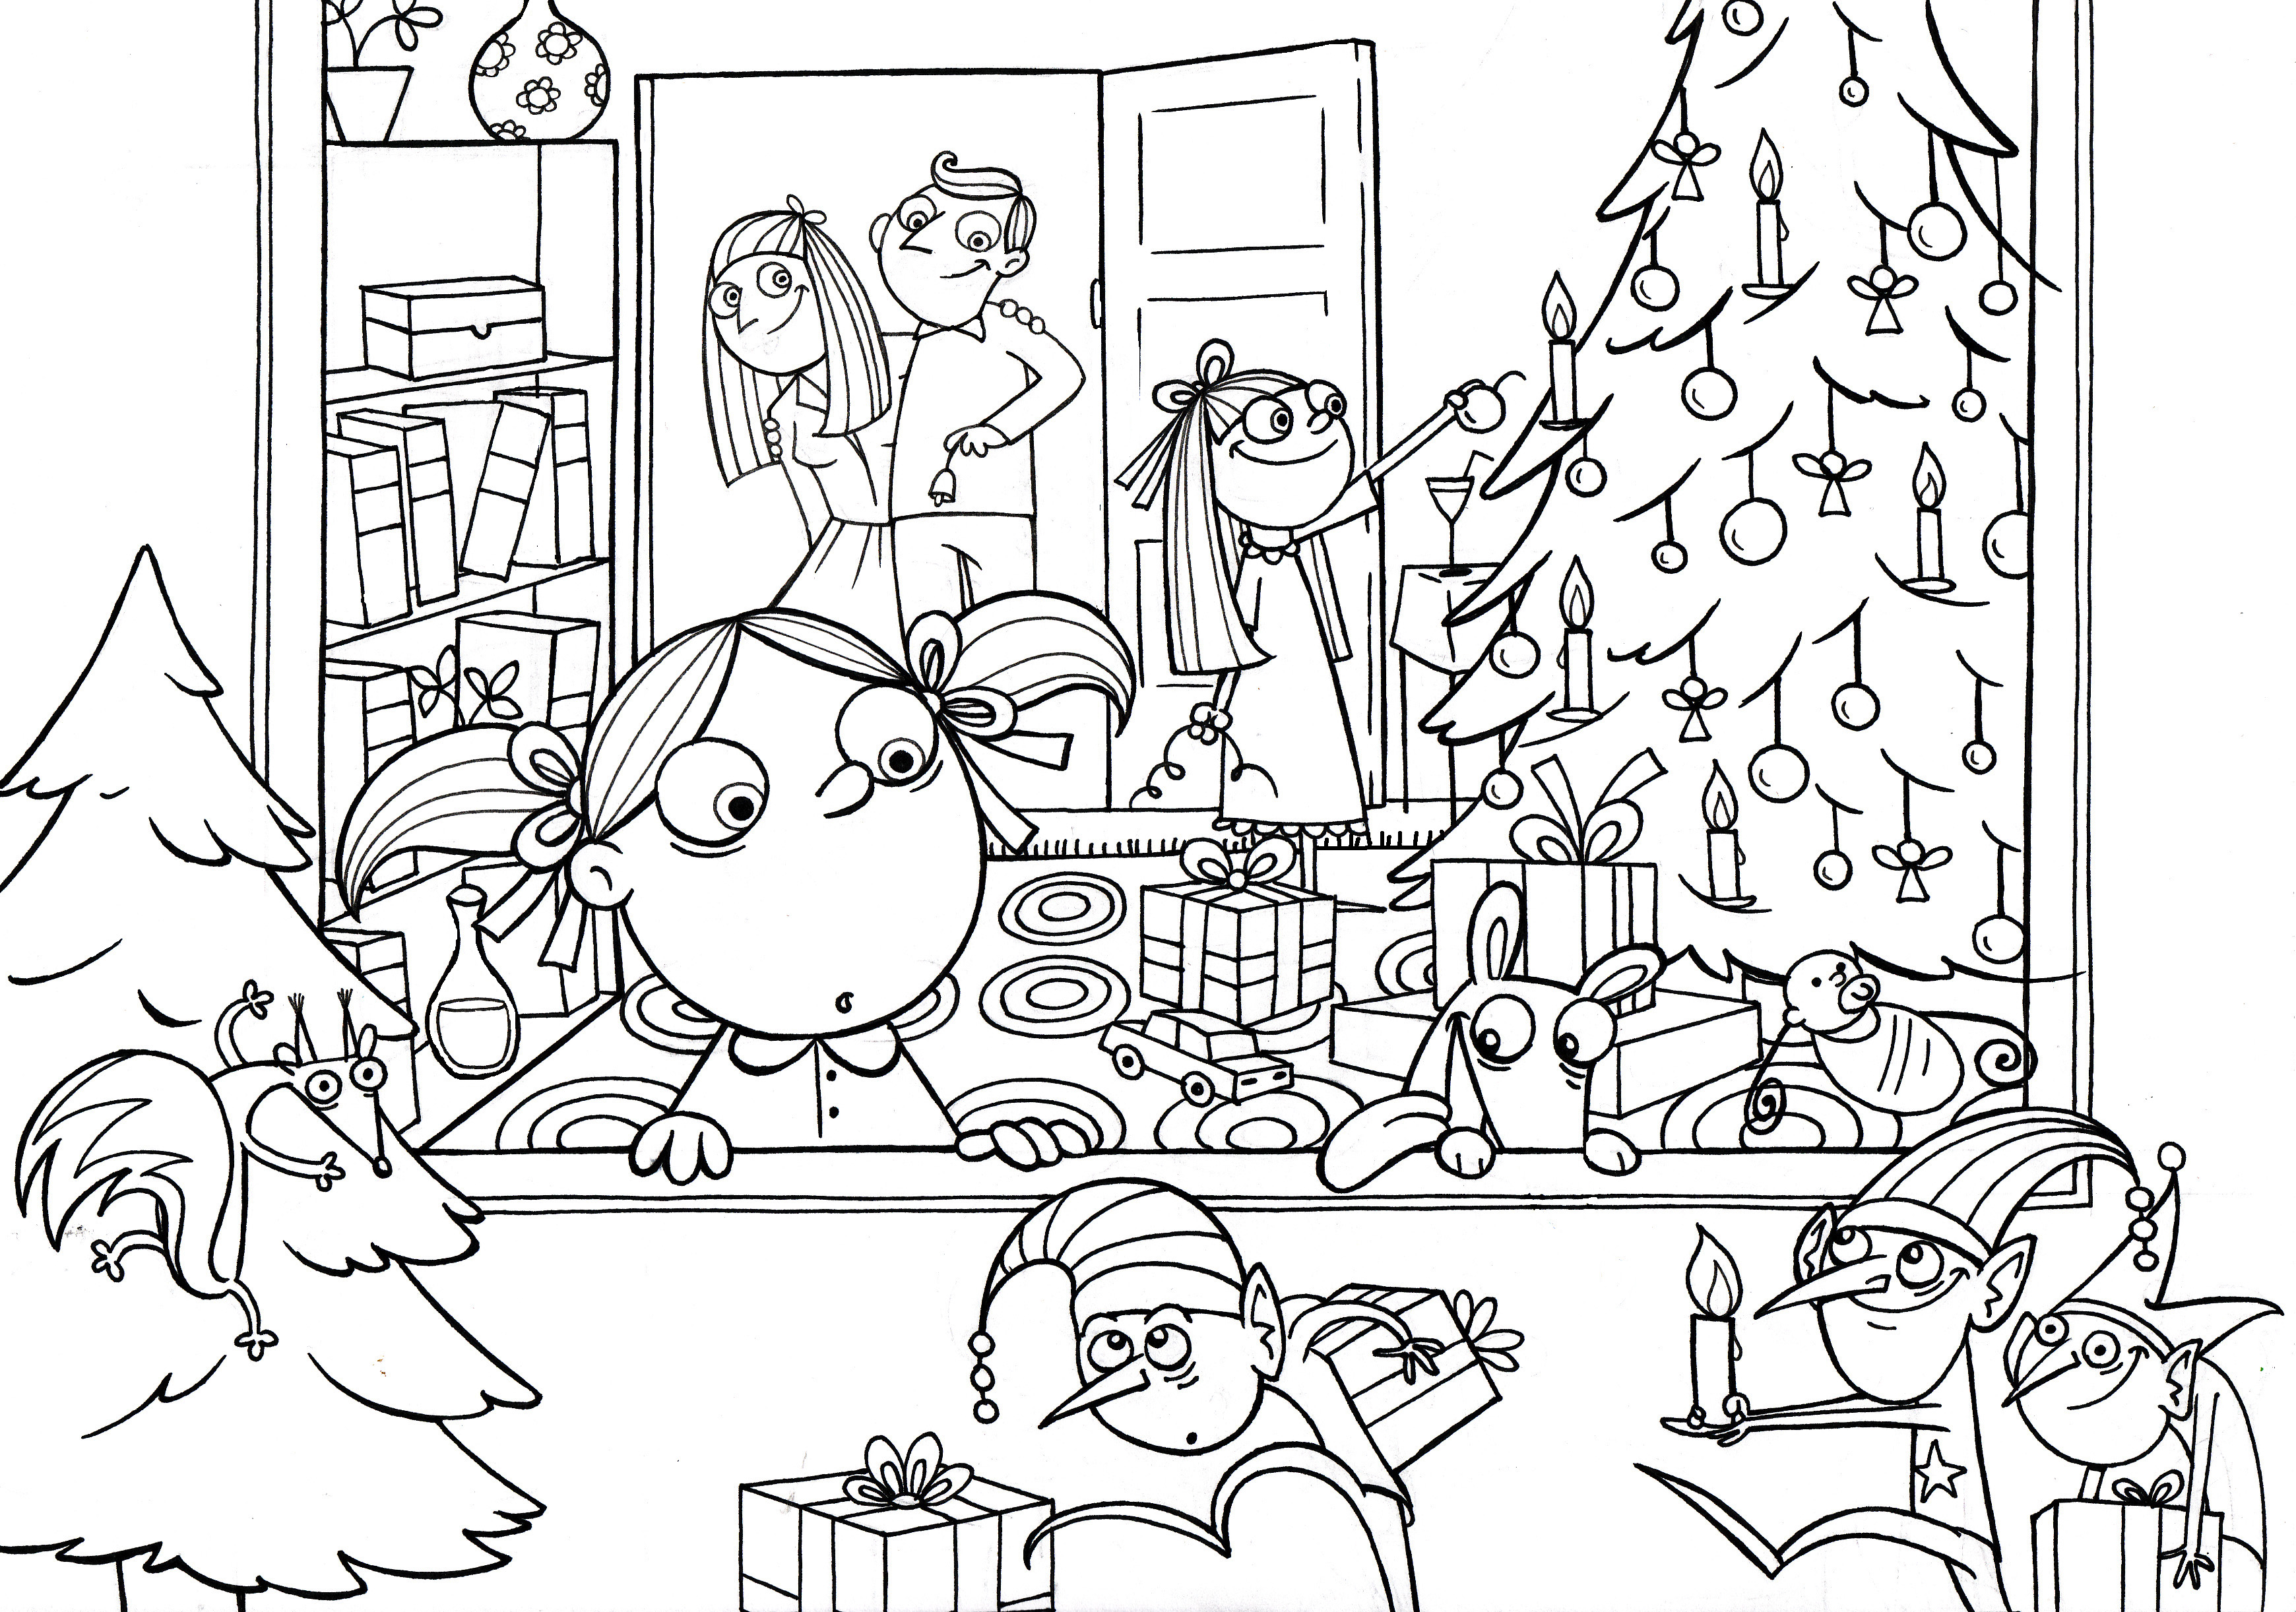 Christmas Village Coloring Pages Printable With Scene 2023808